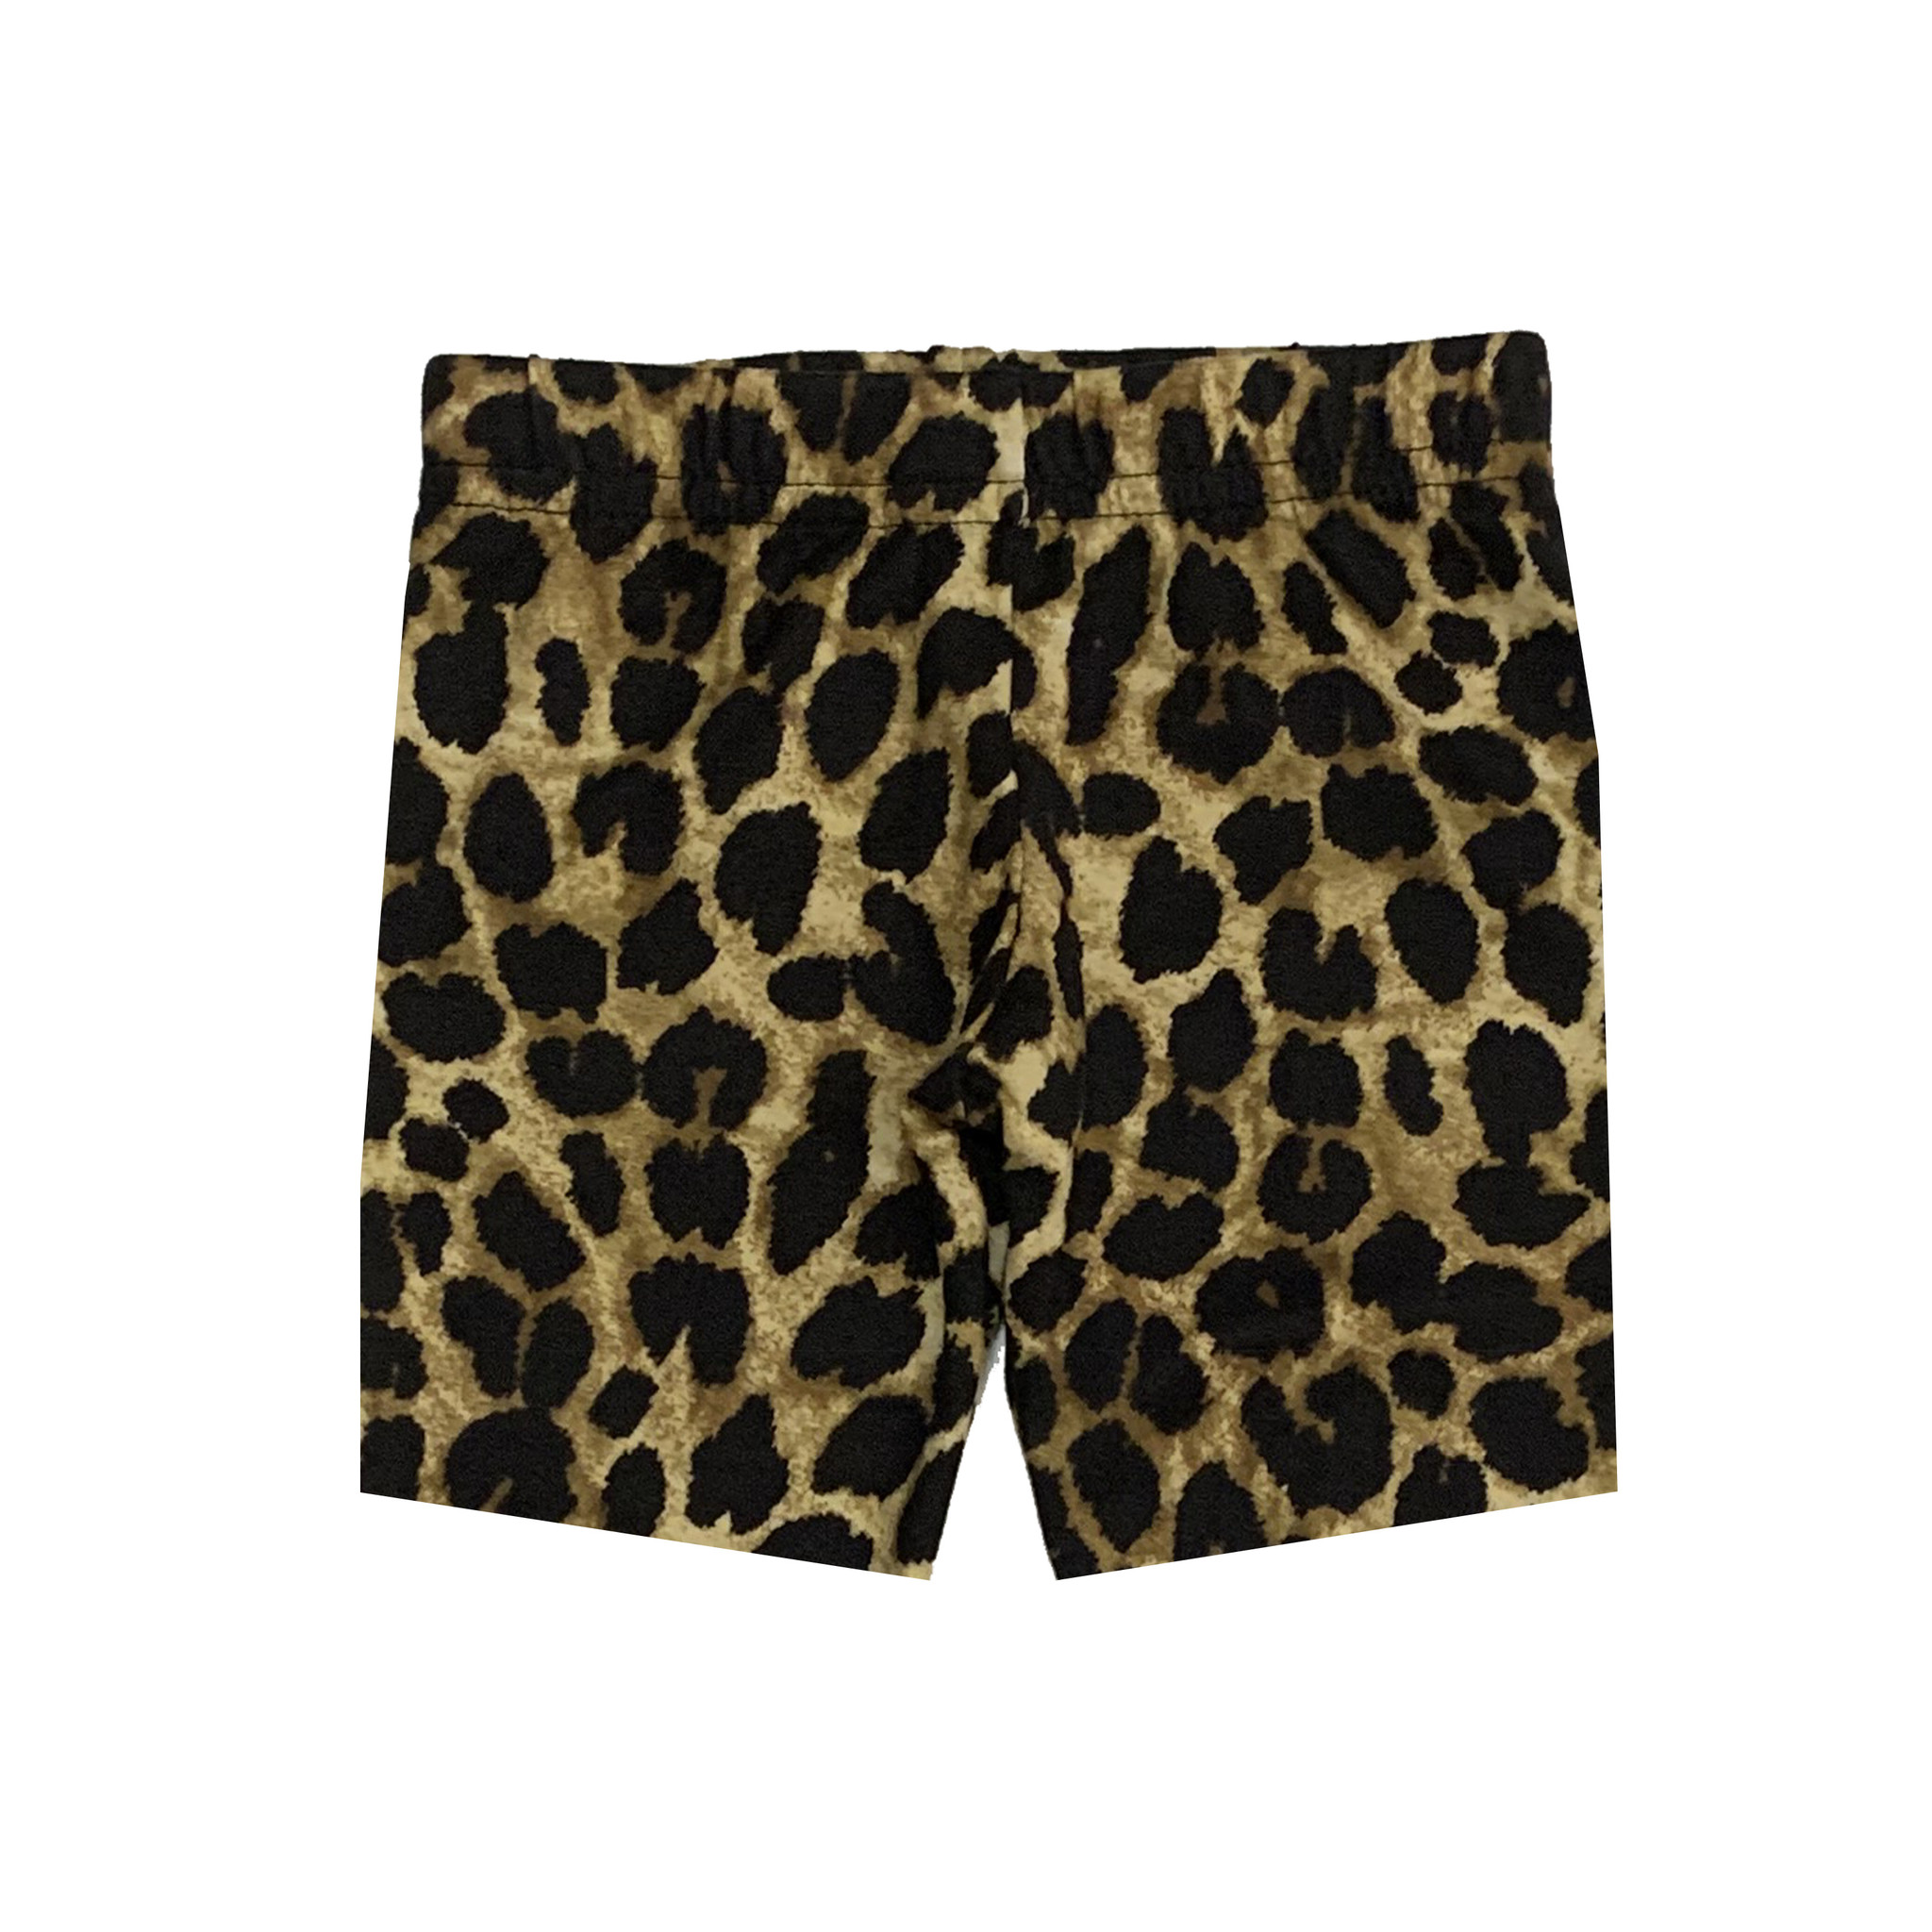 Small Change Cheetah Print Bike Shorts